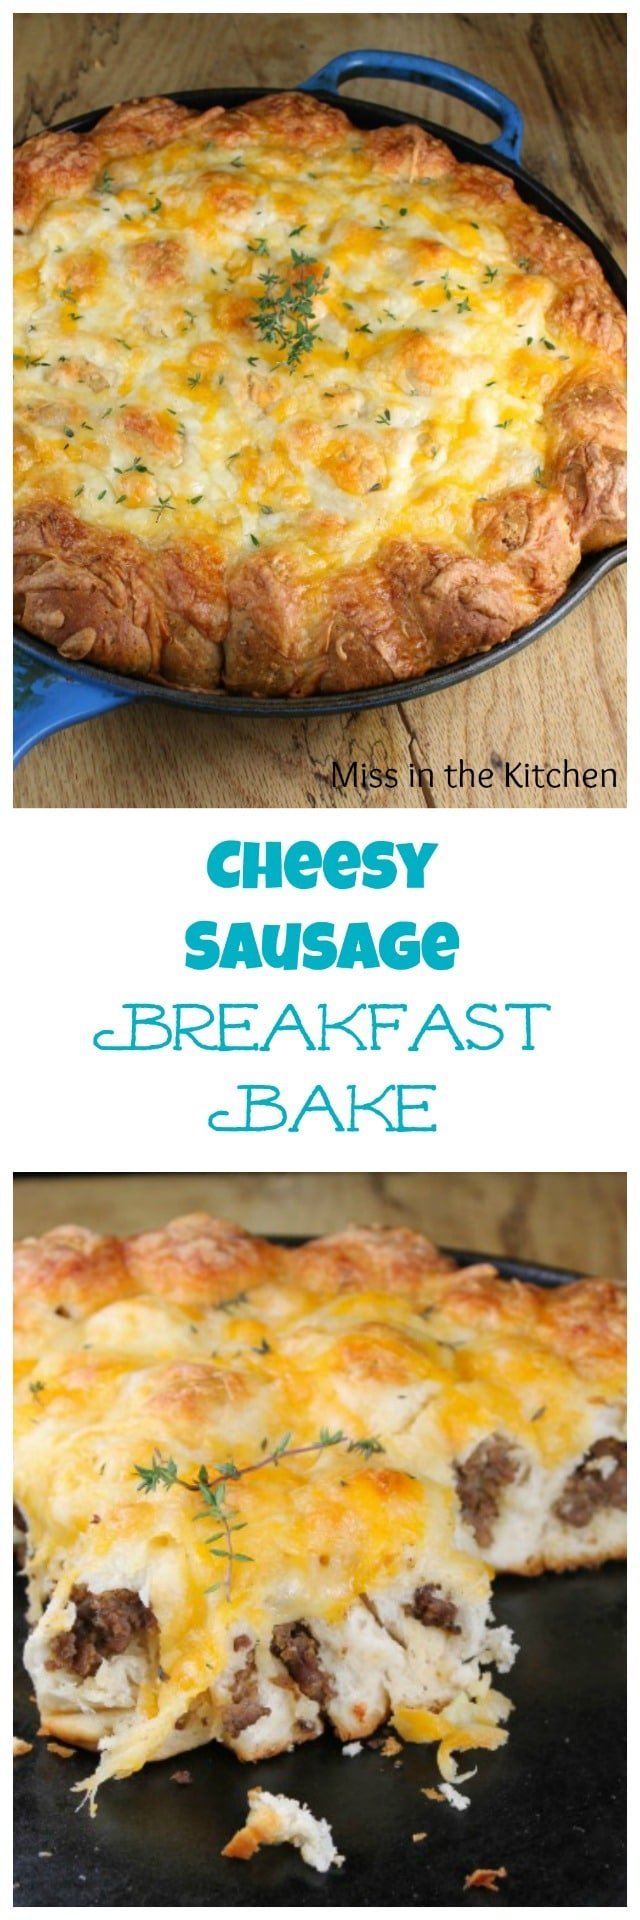 Cheesy Sausage Breakfast Bake Recipe from MissintheKitchen #ad